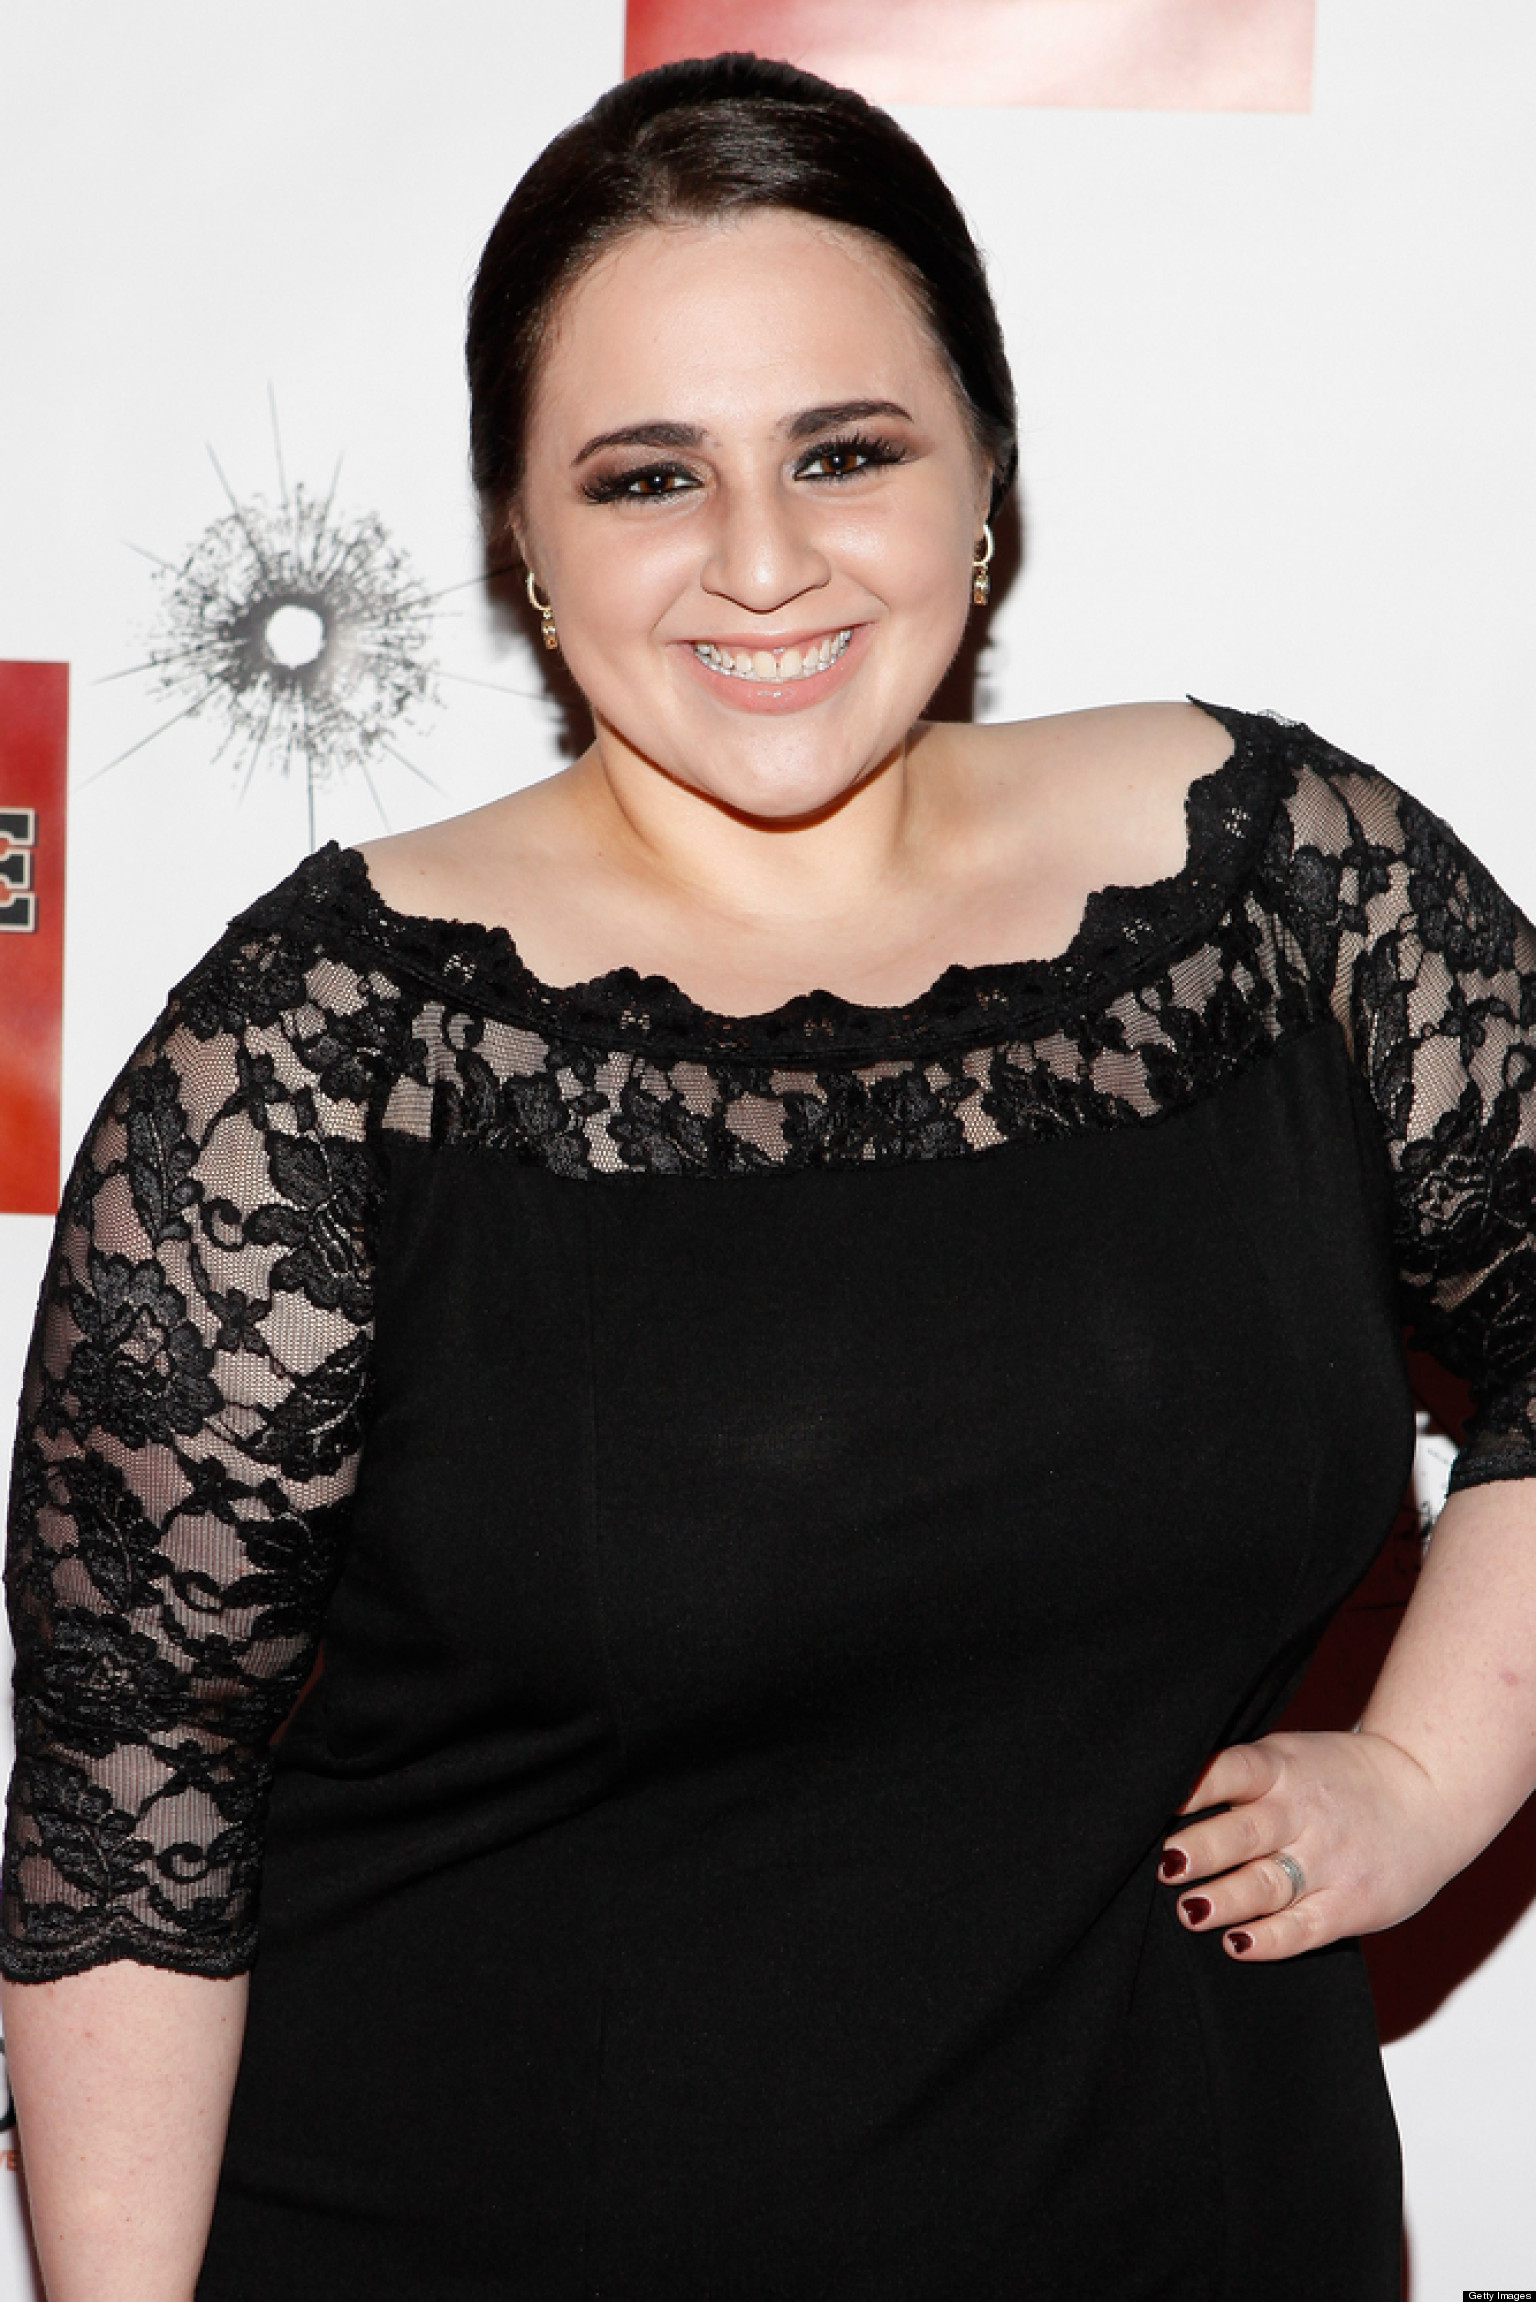 nikki blonsky height and weightnikki blonsky tumblr, nikki blonsky facebook, nikki blonsky instagram, nikki blonsky good morning baltimore lyrics, nikki blonsky height feet, nikki blonsky broadway, nikki blonsky 2015, nikki blonsky 2014, nikki blonsky weight loss, nikki blonsky boyfriend, nikki blonsky height and weight, nikki blonsky good morning baltimore, nikki blonsky i can hear the bells, nikki blonsky and zac efron interview, nikki blonsky and zac efron kiss, nikki blonsky and zac efron relationship, nikki blonsky weight, nikki blonsky weight loss 2014, nikki blonsky 2016, nikki blonsky twitter